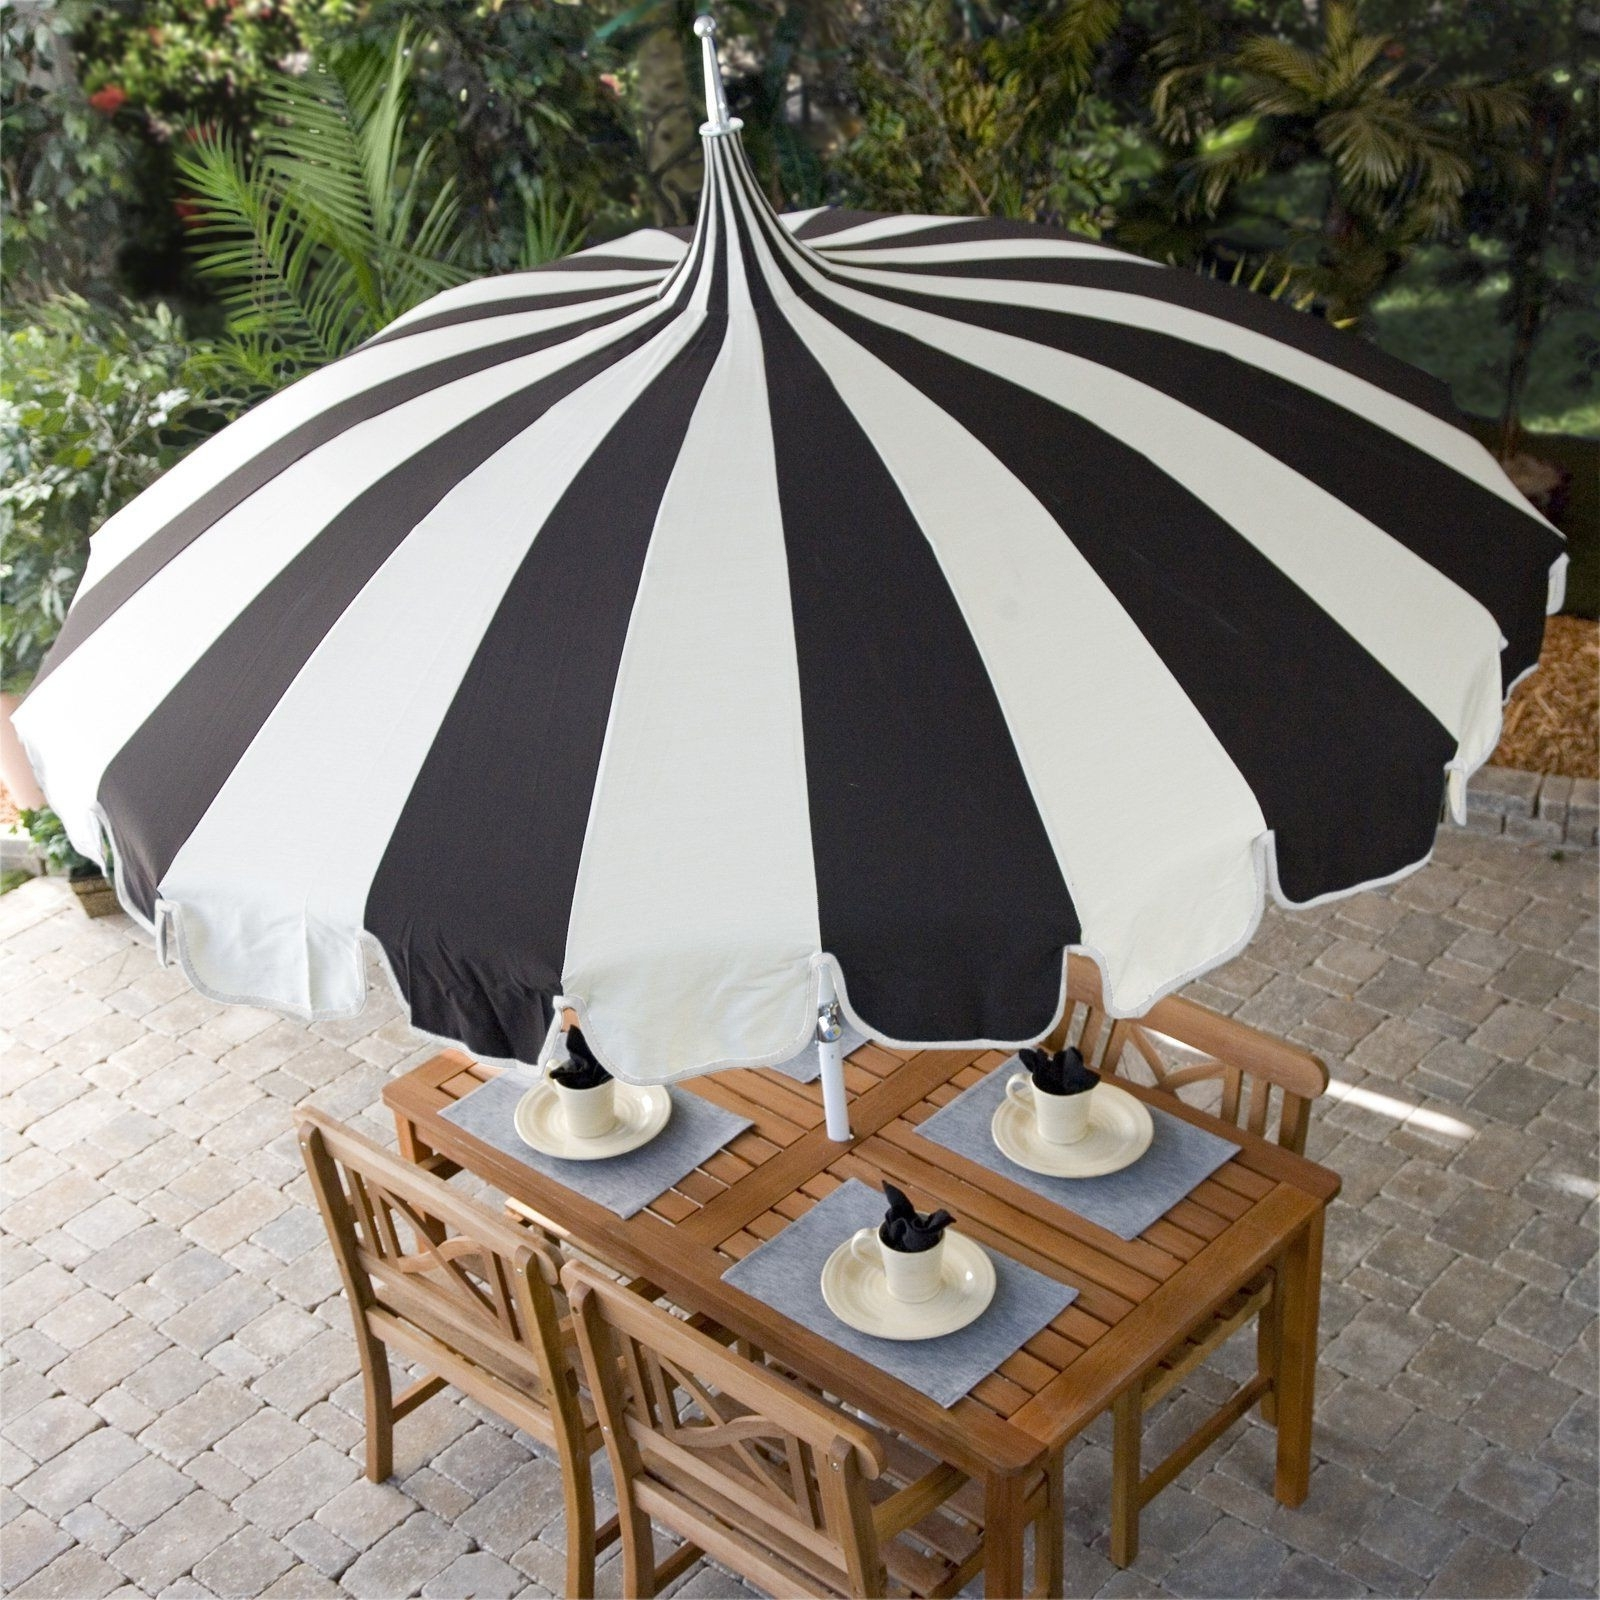 Lowes Patio Umbrella Best Of Have To Have It Pagoda 8 5 Ft Patio For Most Recent Patio Umbrellas At Lowes (Gallery 19 of 20)